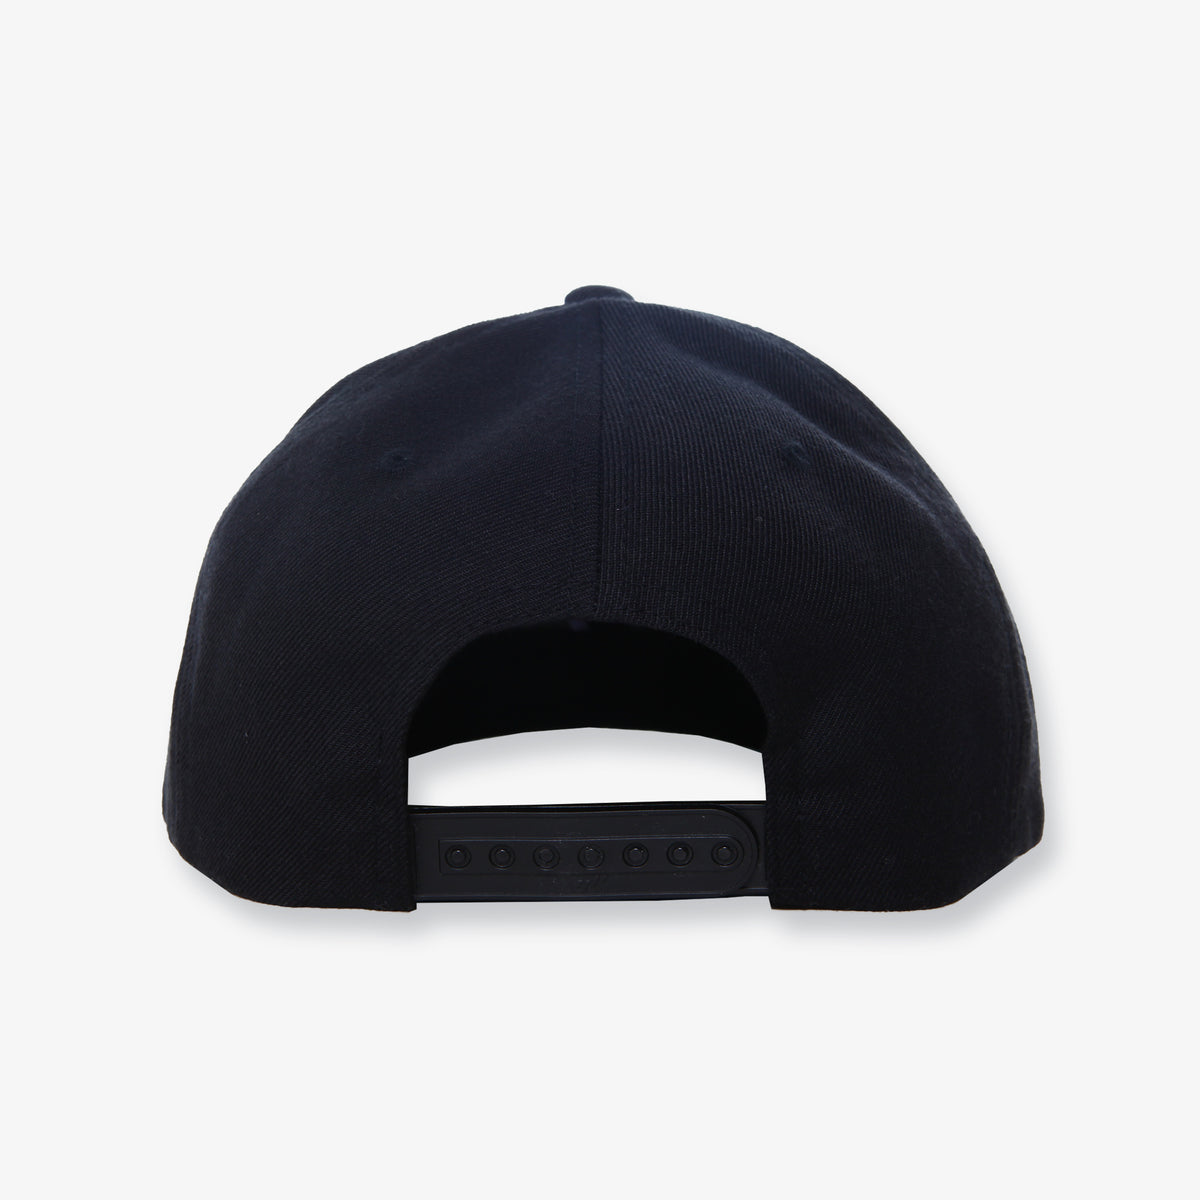 Tower Classic Hat - Black